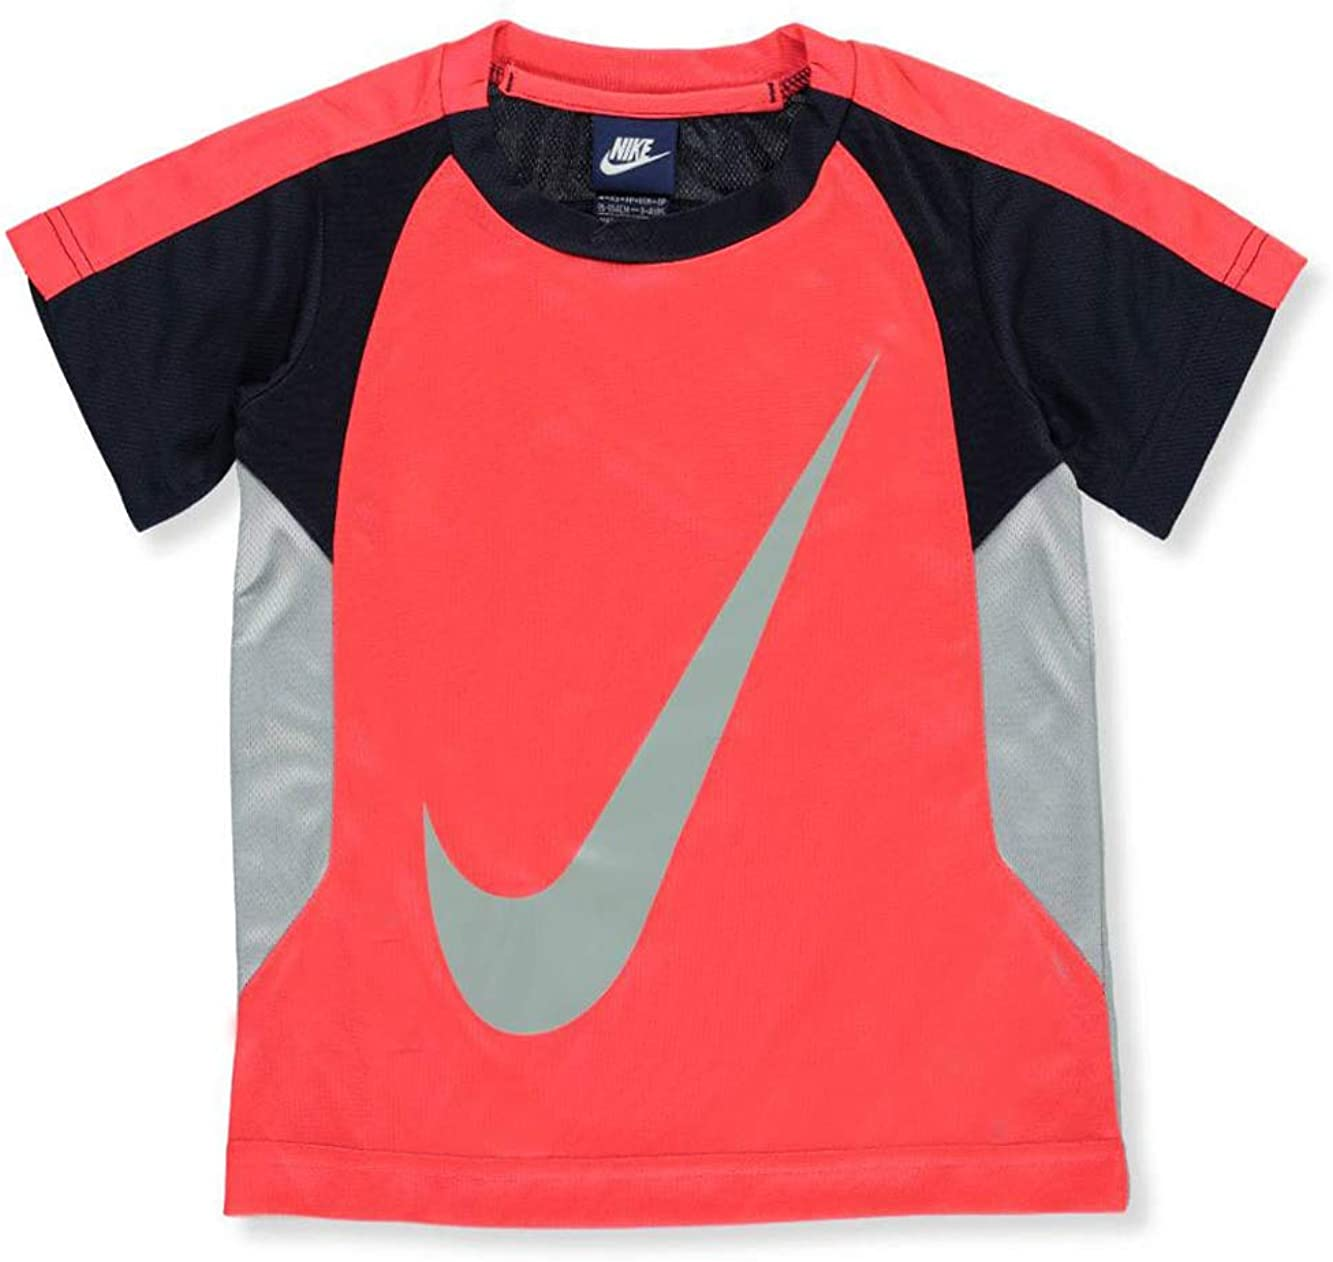 Nike Little Boys' Performance Max 44% OFF Max 88% OFF 4-7 Sizes T-Shirt